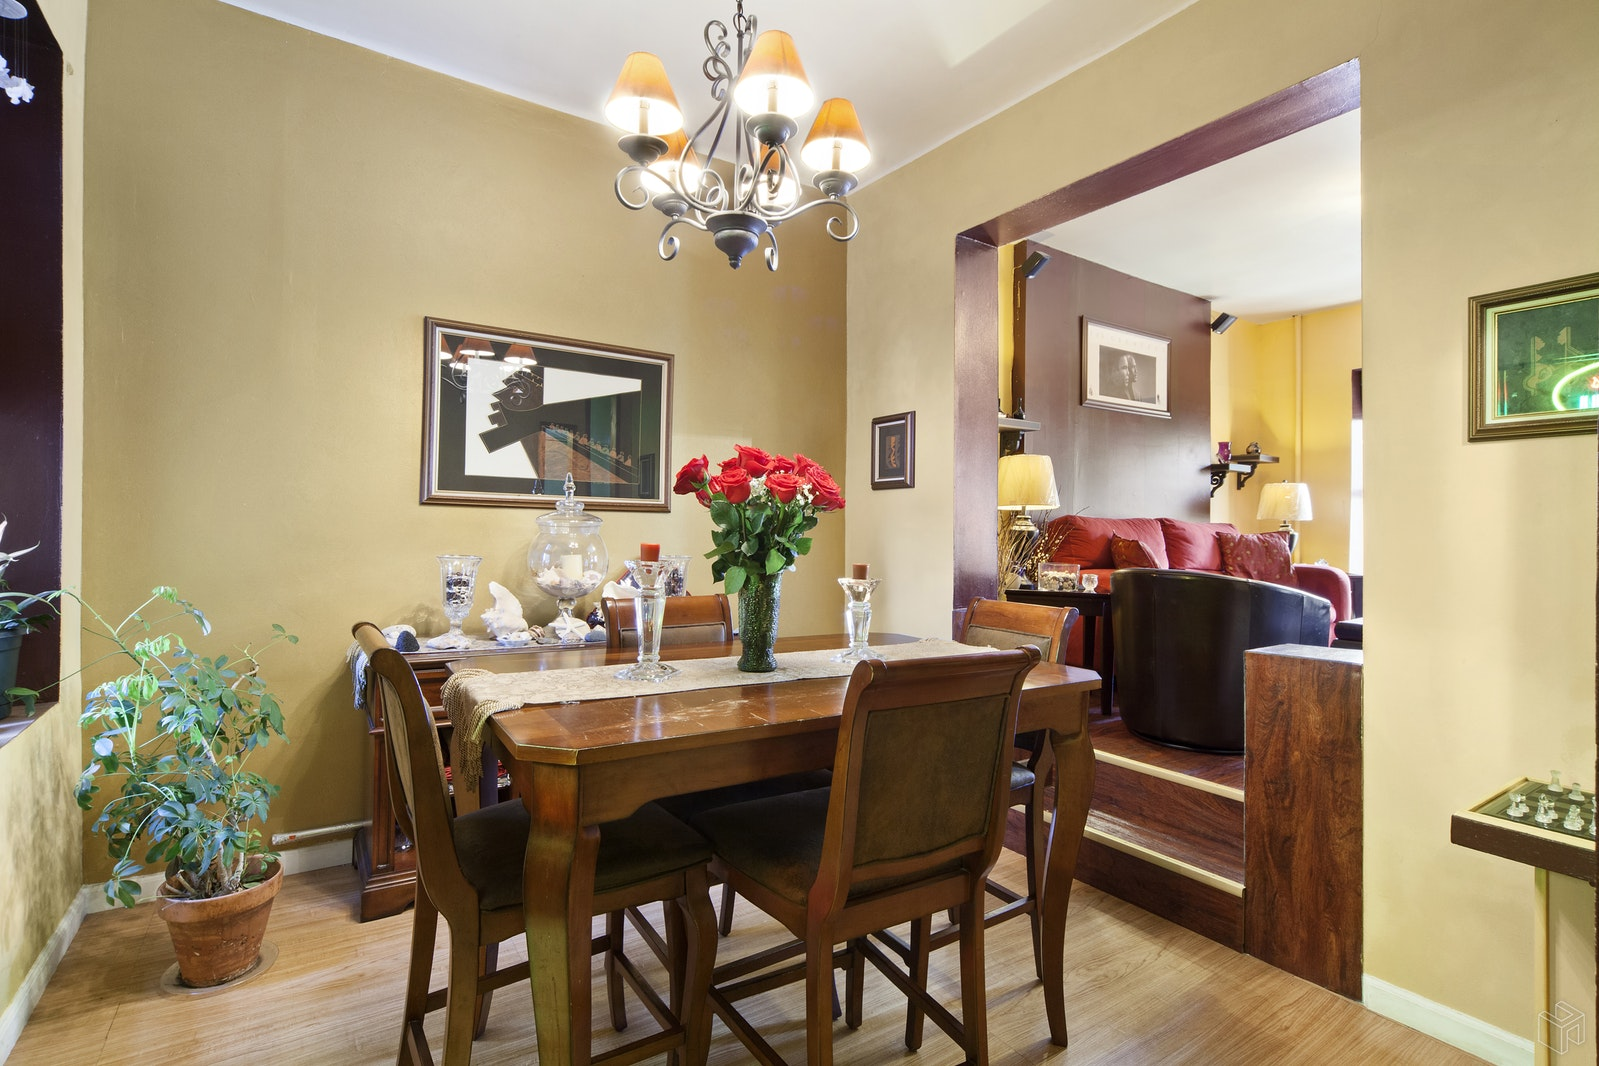 Apartment for sale at 59 Morningside Avenue, Apt 4S